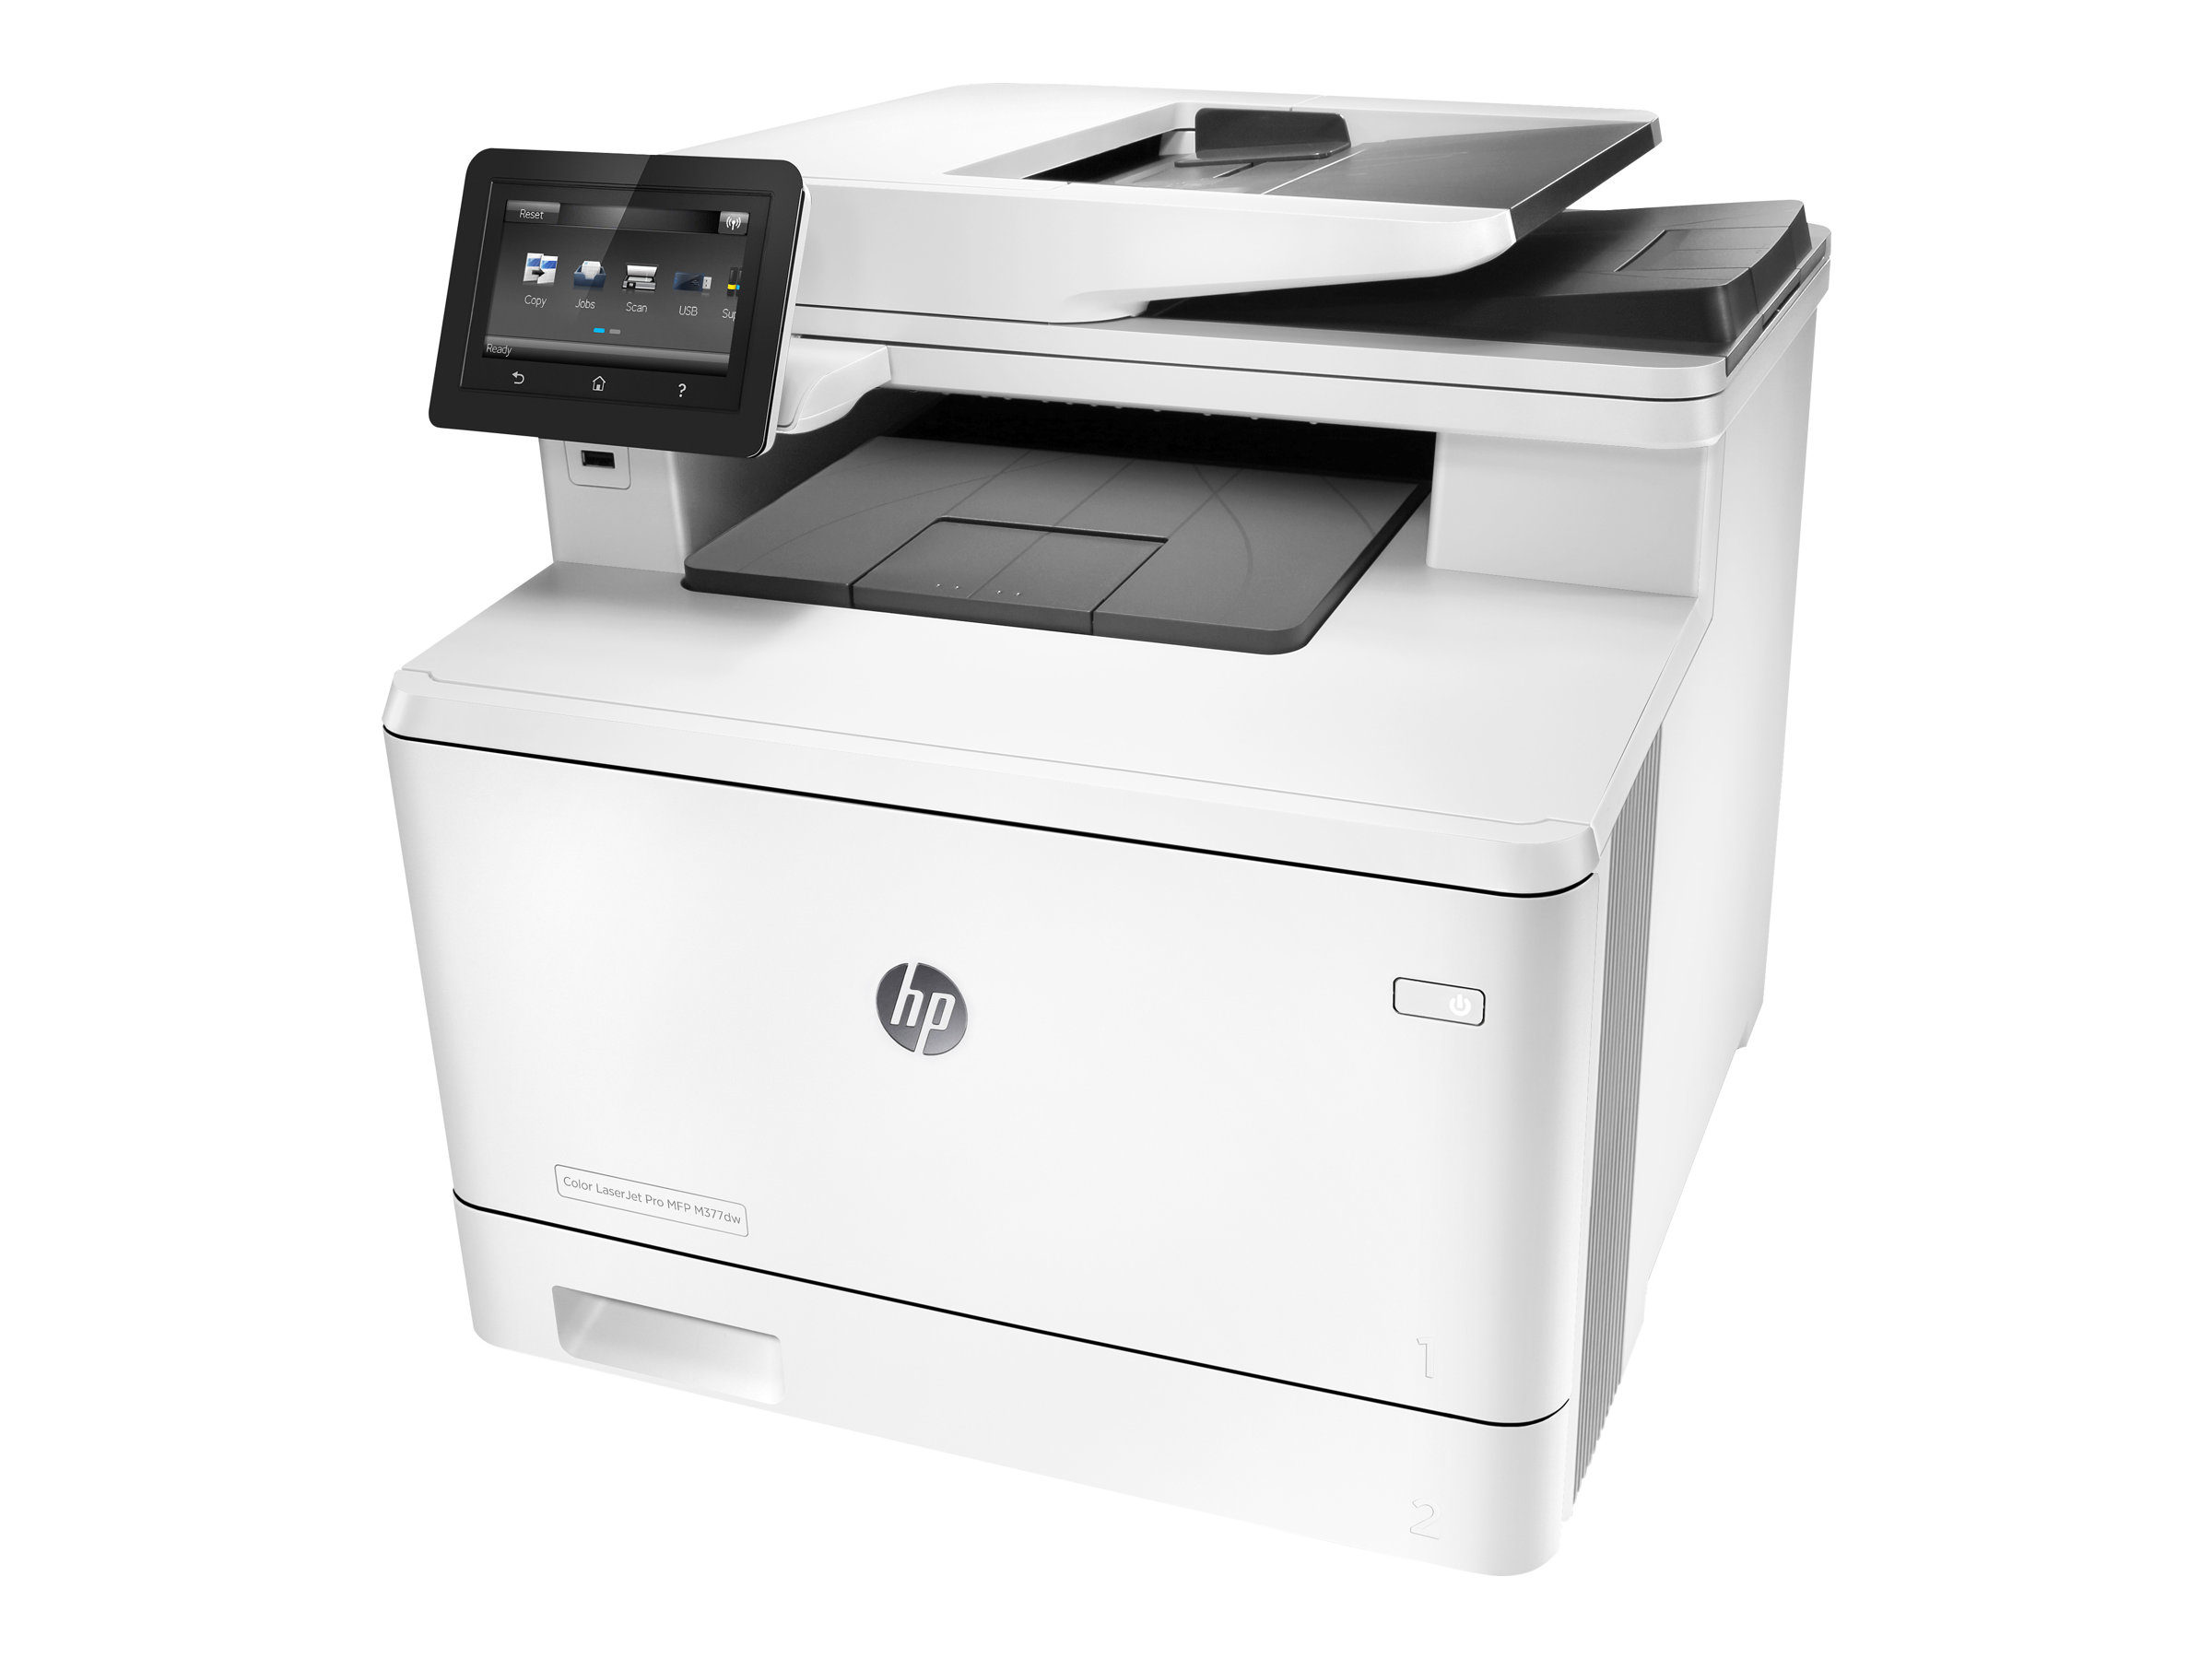 hp laserjet pro mfp m377dw imprimante multifonctions. Black Bedroom Furniture Sets. Home Design Ideas